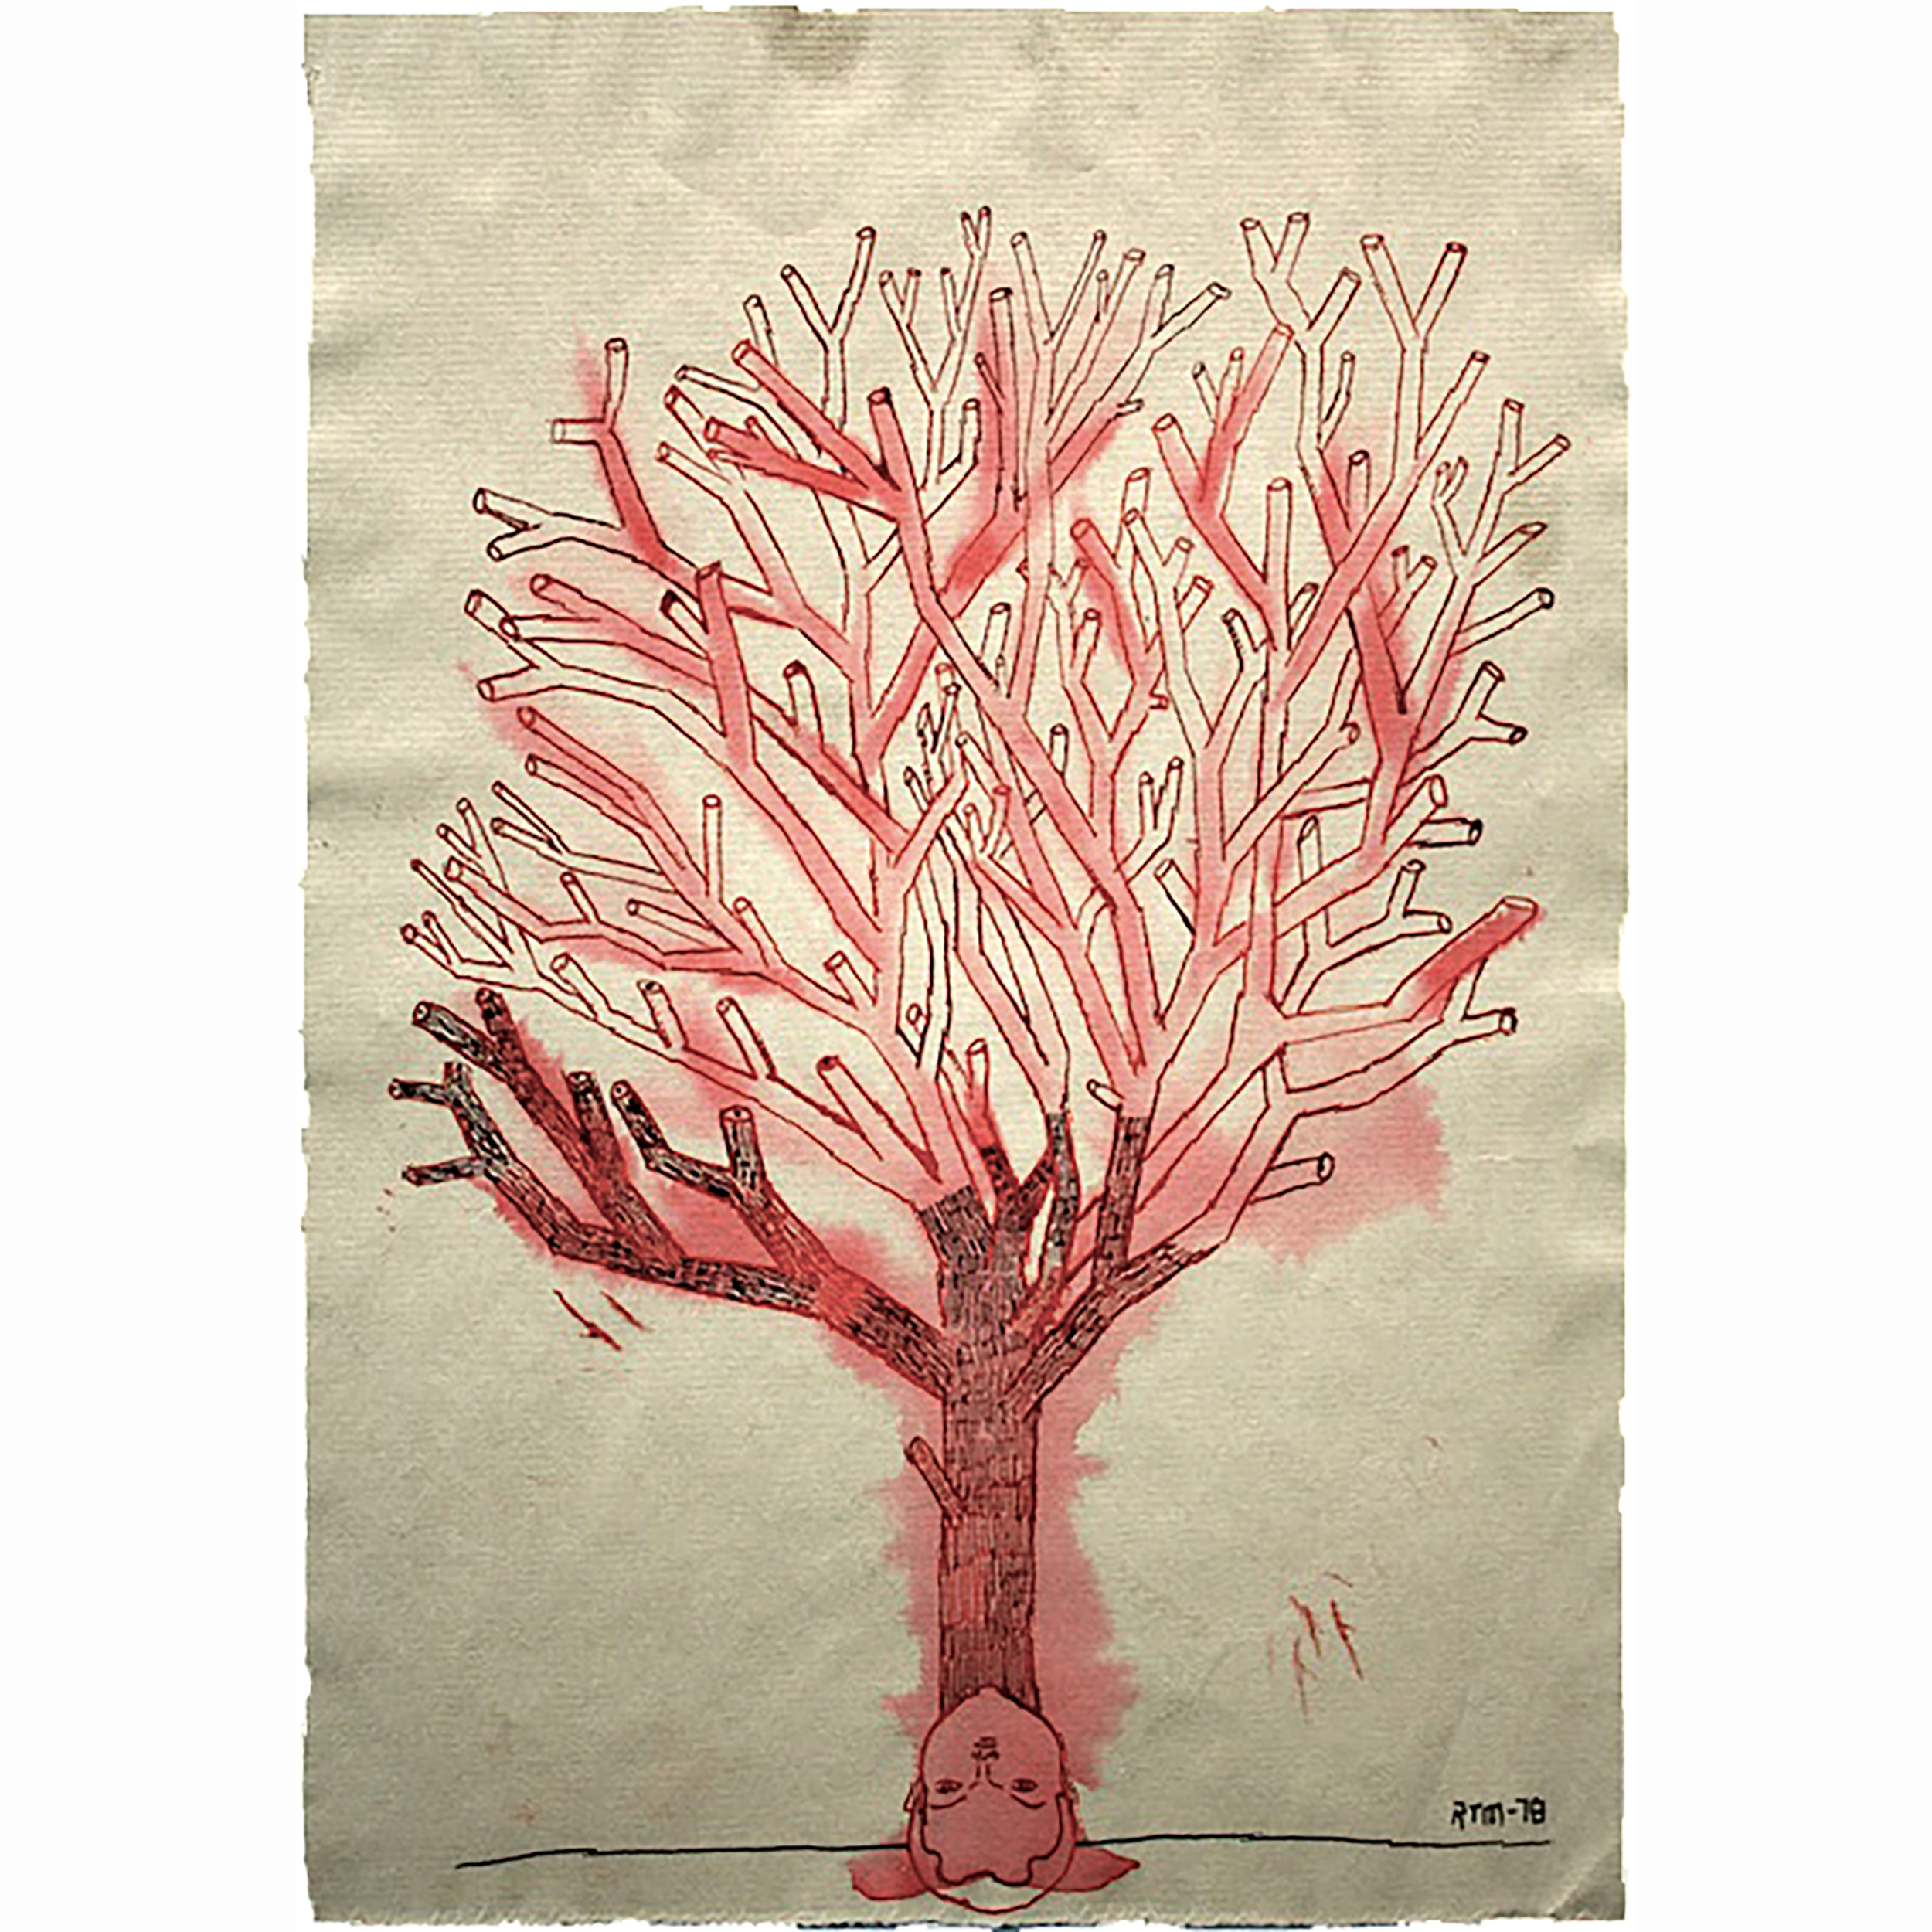 Red Rhizome, n/d (dated 78)